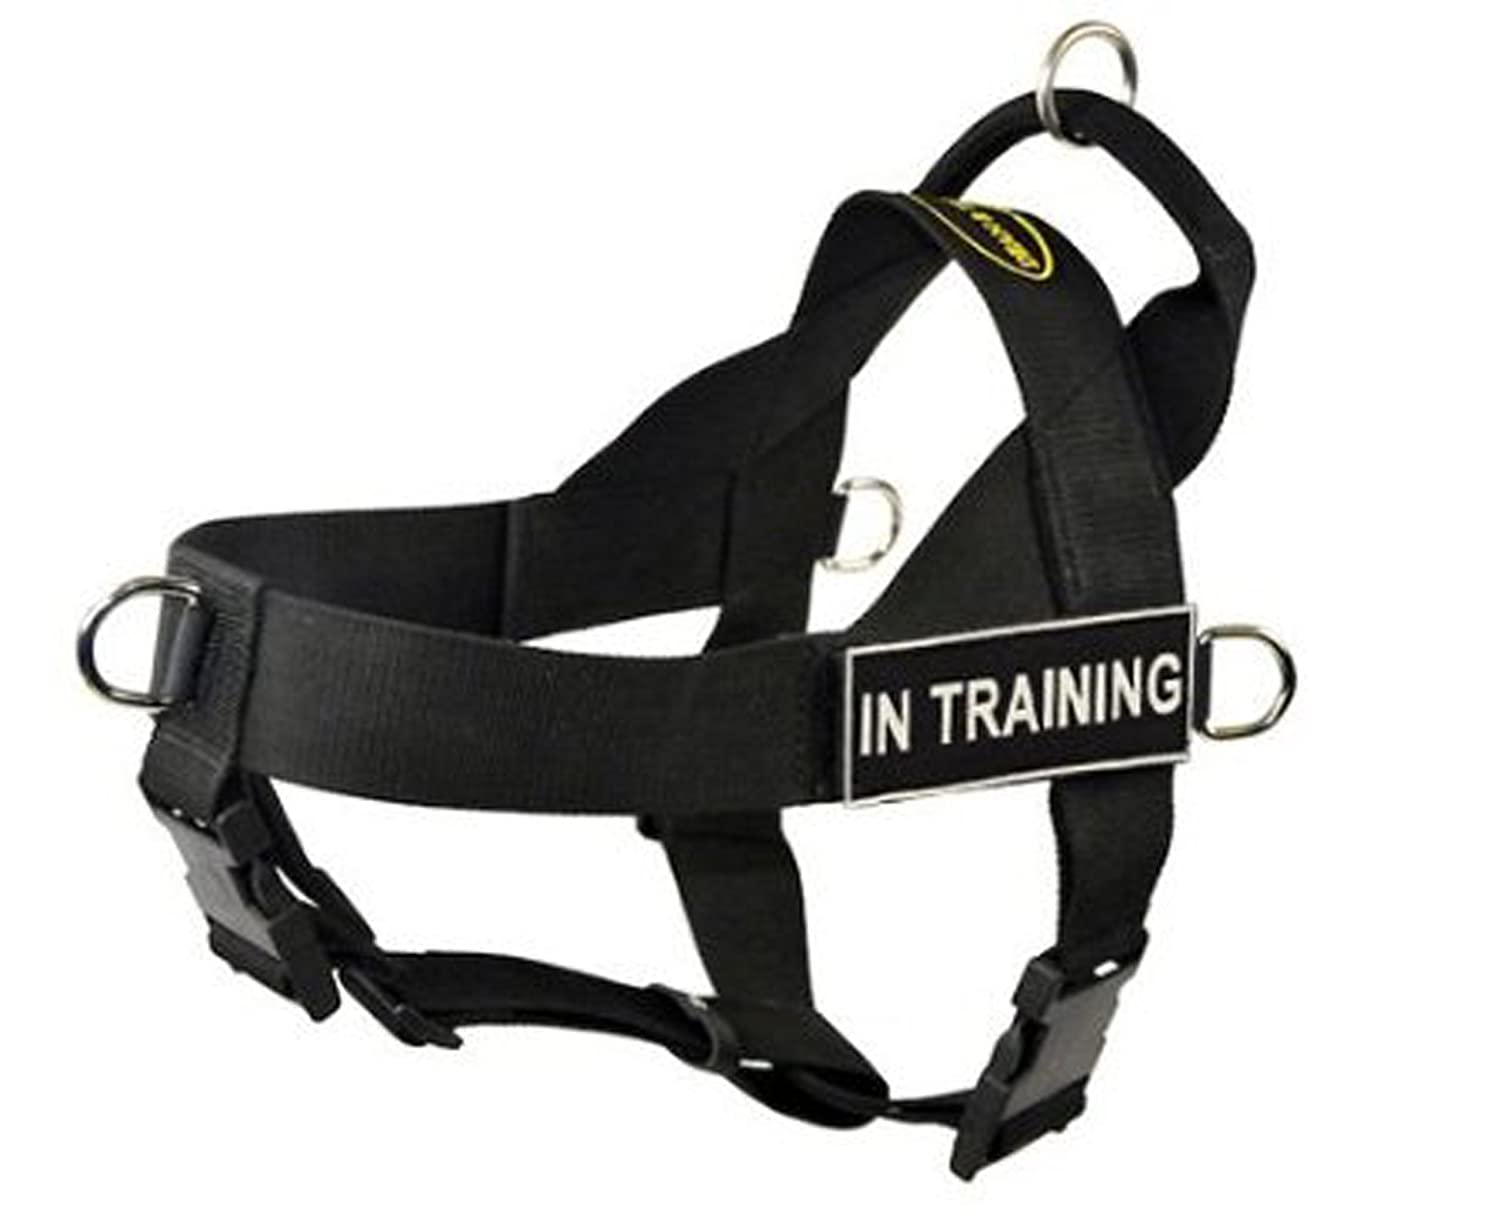 L Dean & Tyler Universal No Pull Dog Harness, In Training, Large, Fits Girth Size  31-Inch to 42-Inch, Black